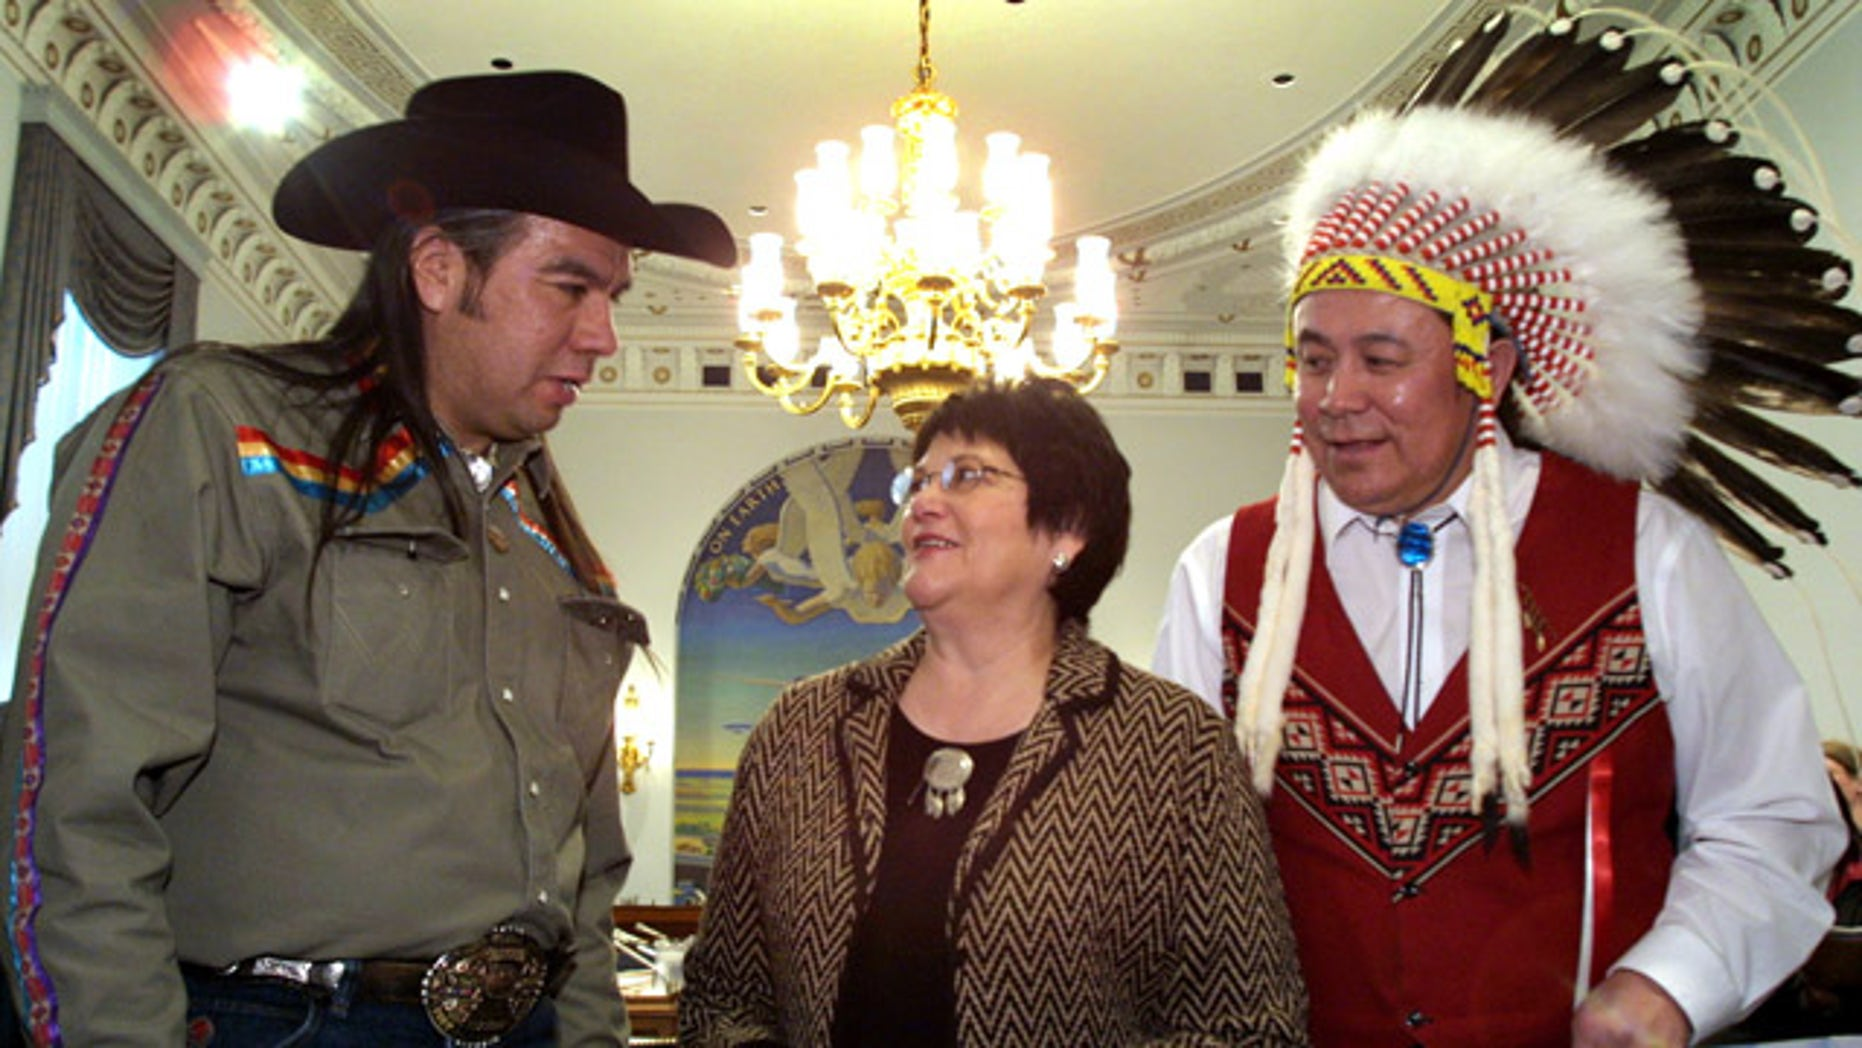 FILE - A Feb. 6, 2002 file photo shows National Congress of American Indians President Tex Hall, left, with Elouise Cobell of the Blackfeet Tribe of Montana, center, and Jimmy Goddard, from the same tribe, on Capitol Hill.  Settlement payments among hundreds of thousands of Native Americans whose land-trust royalties were mismanaged by the government for more than a century have been held up by more than 2,400 appeals by people who were ruled ineligible to participate in the settlement. (AP Photo/Terry Ashe, File)